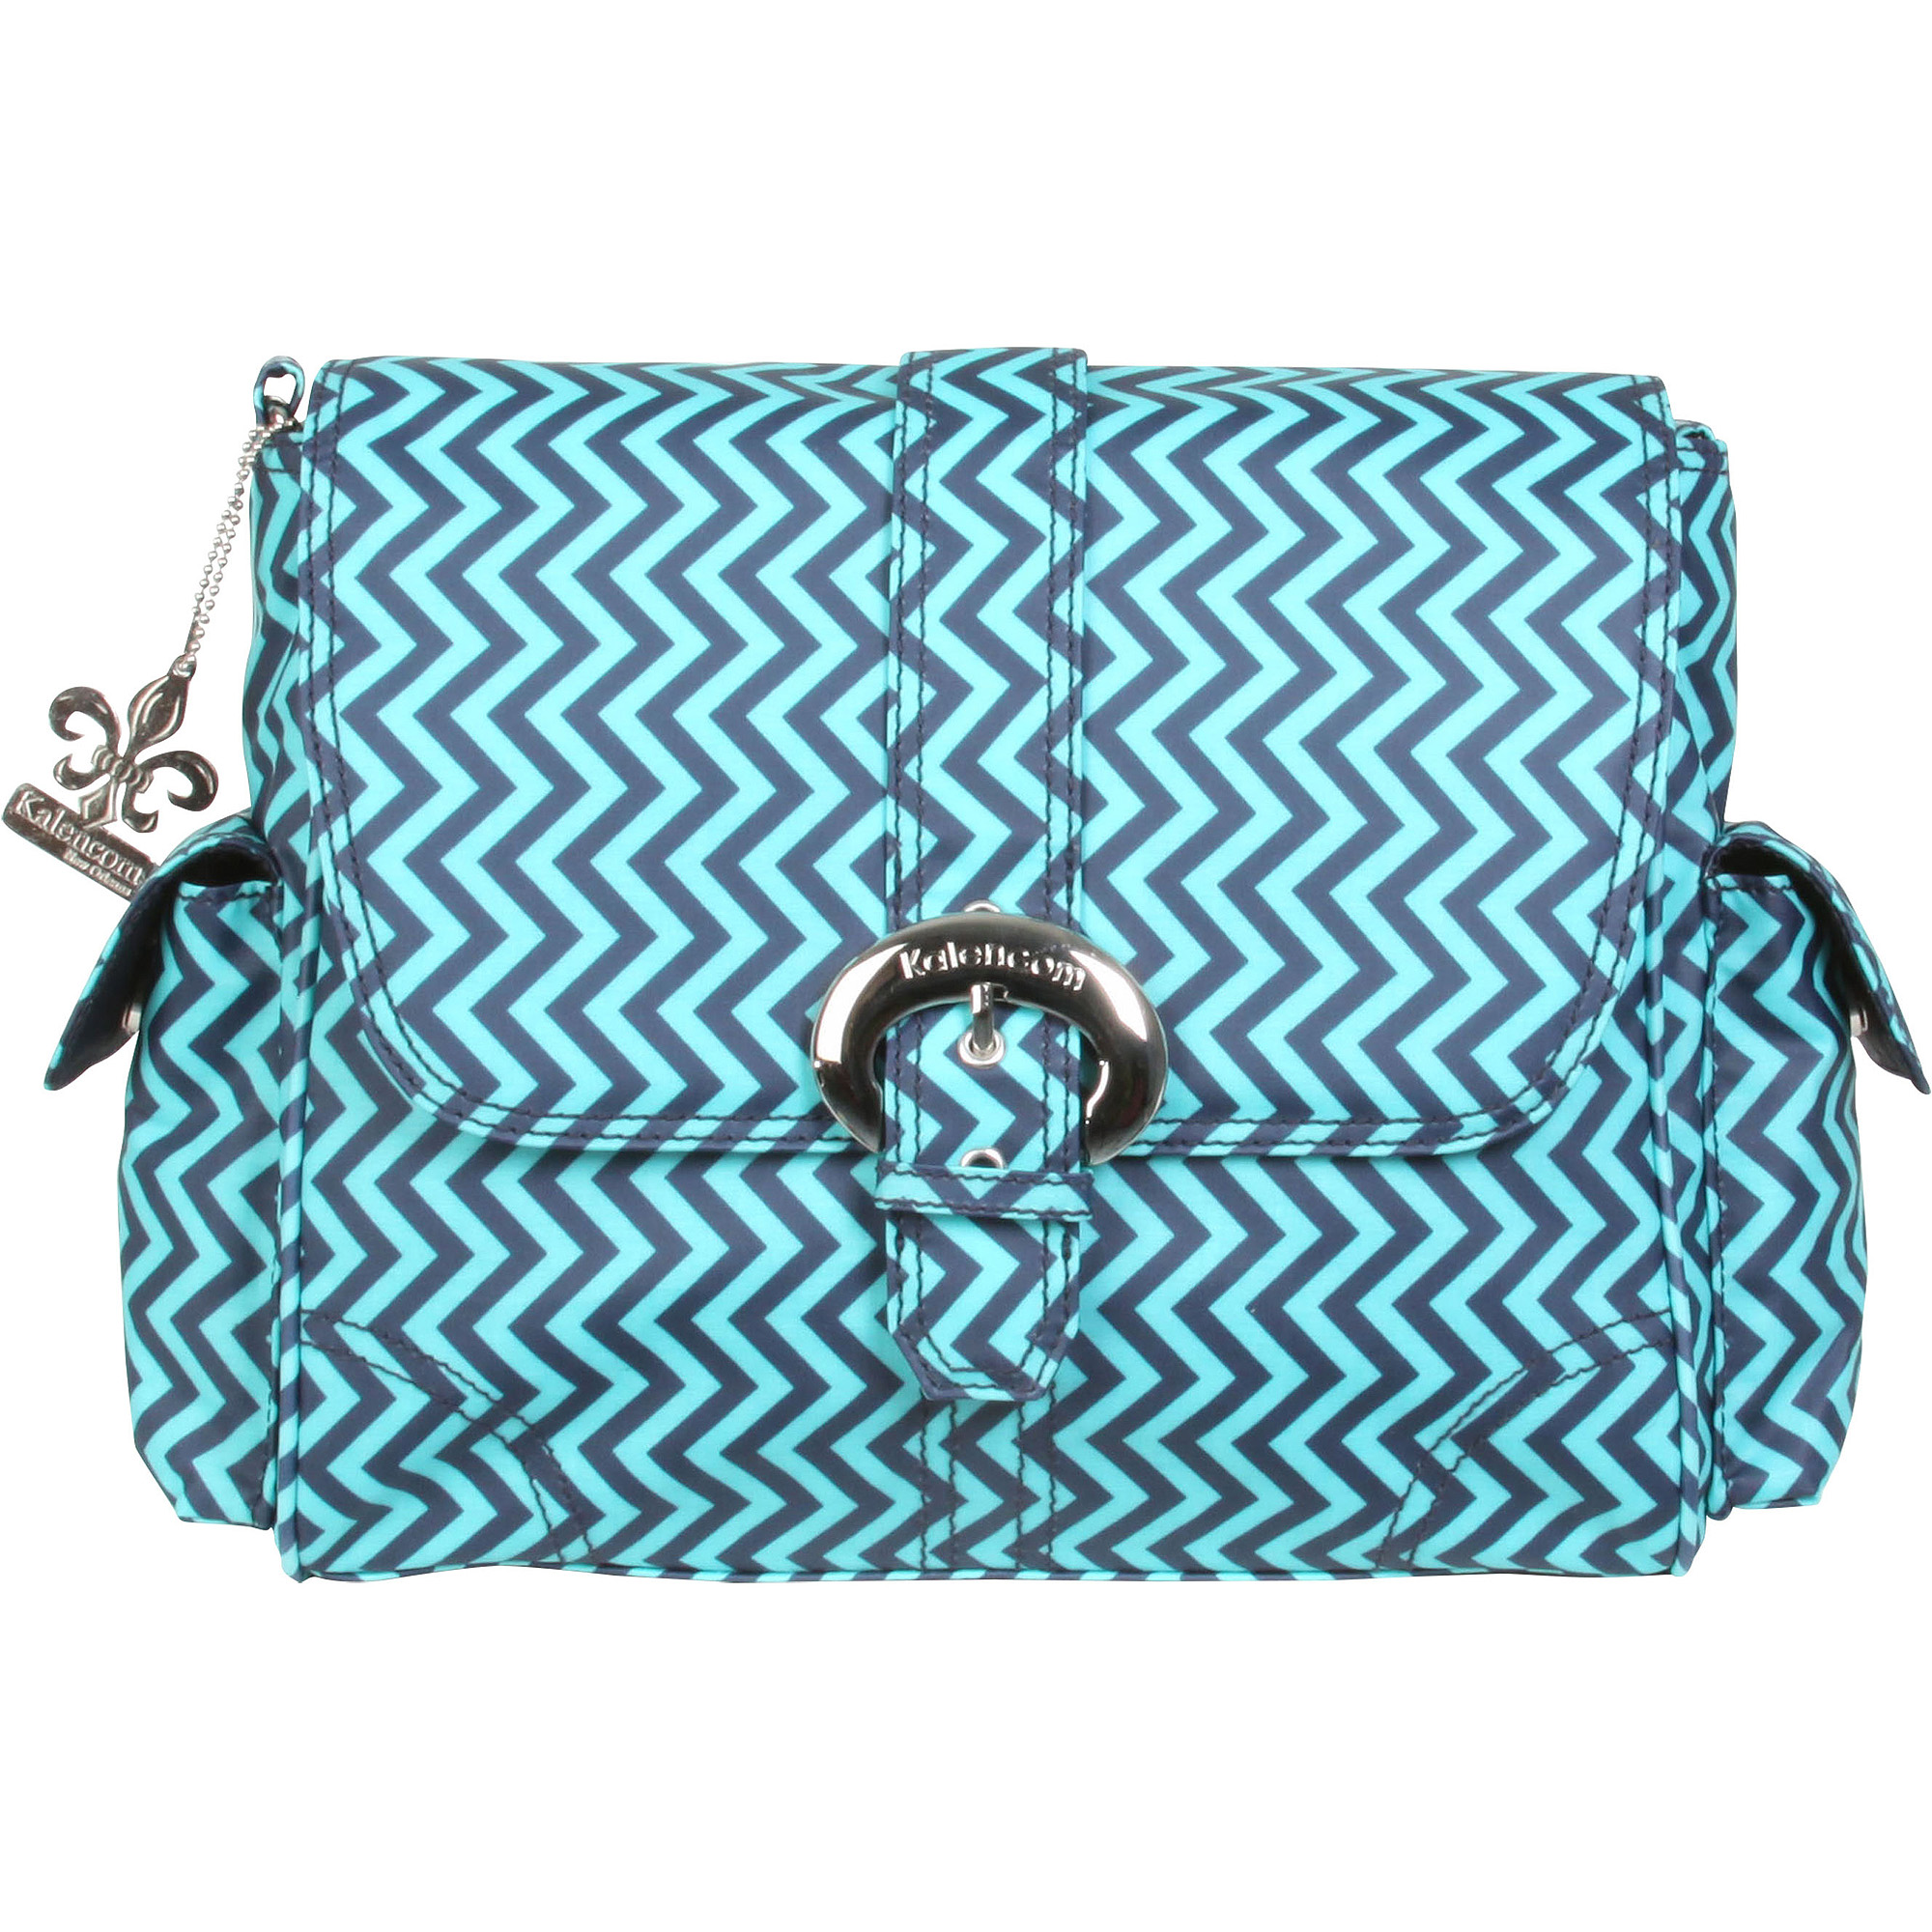 Kalencom Messenger Buckle Diaper Bag, Wiggly Stripes Ocean, Matte Coated